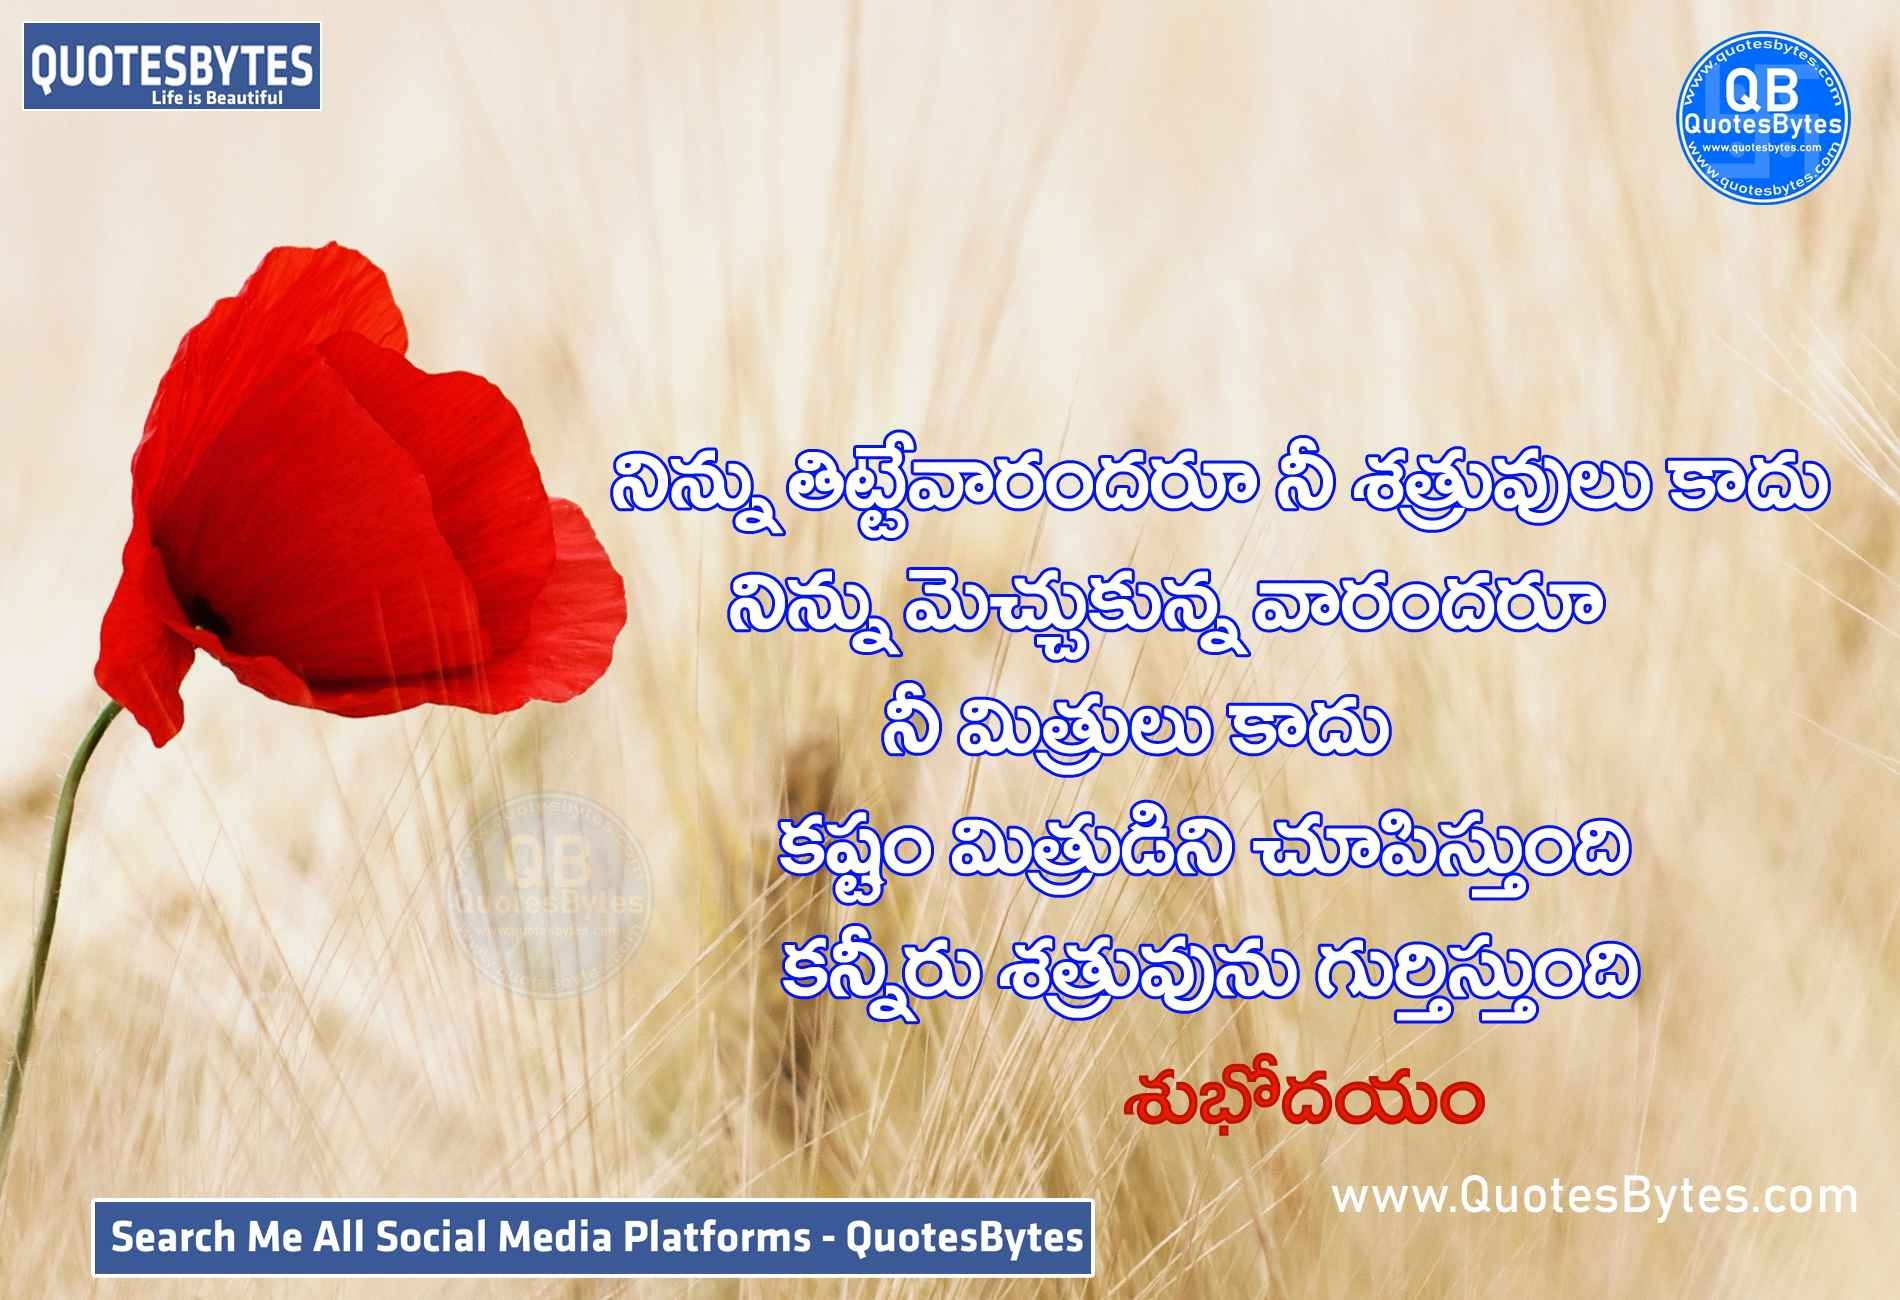 good morning images in telugu-good morning images with quotes in telugu